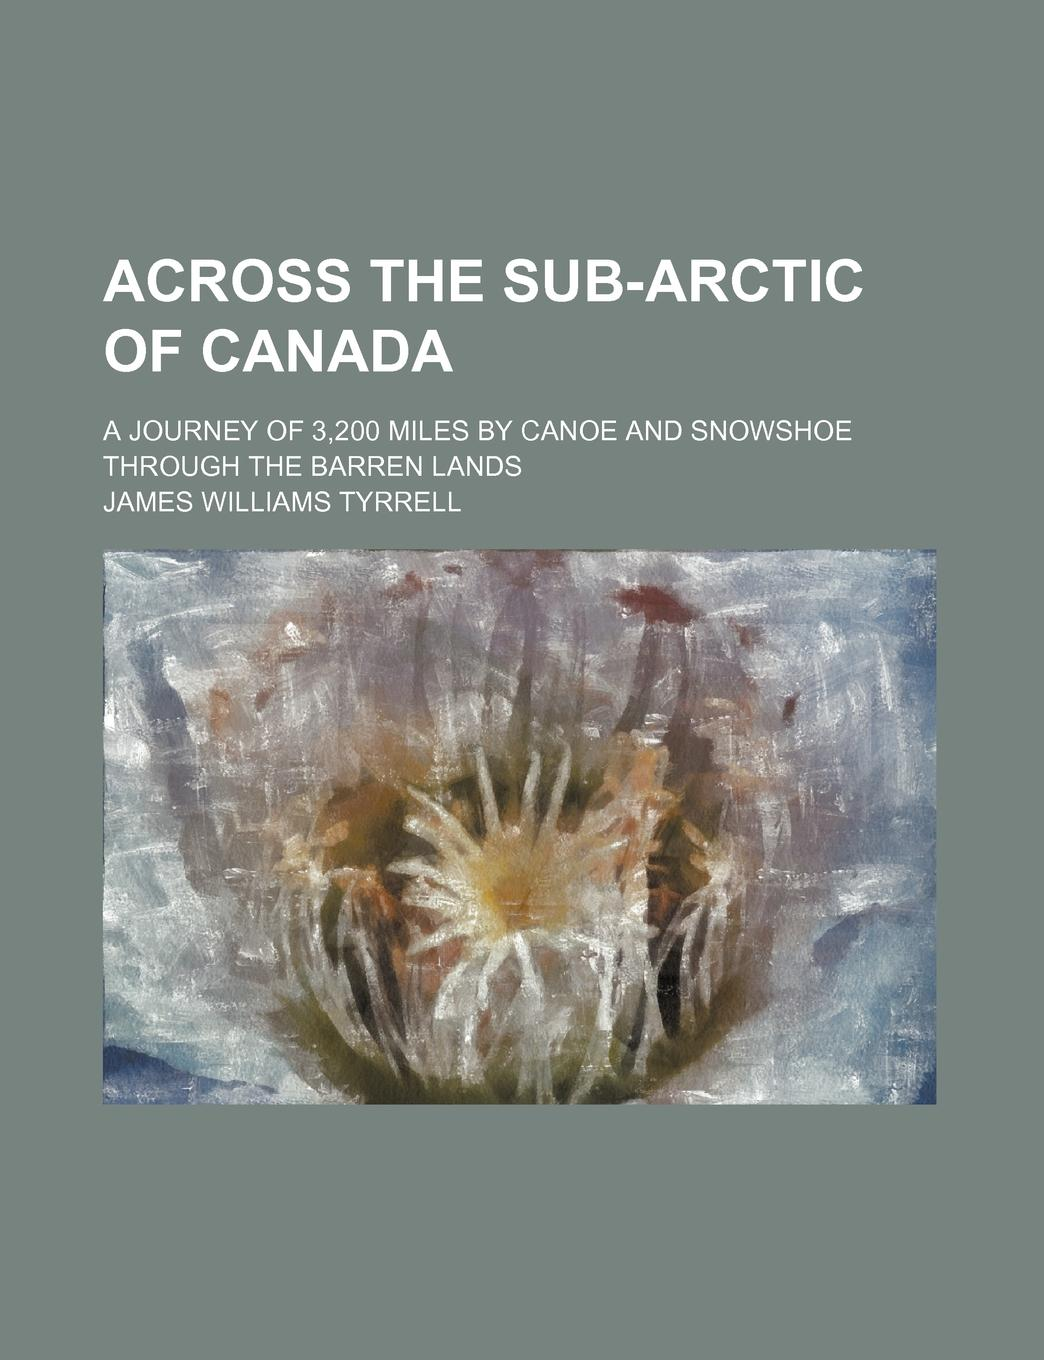 James Williams Tyrrell Across the sub-Arctic of Canada; a journey of 3,200 miles by canoe and snowshoe through the barren lands 4 142 vertical feet tuning potentiometer b20k with the midpoint of the handle length 23mm